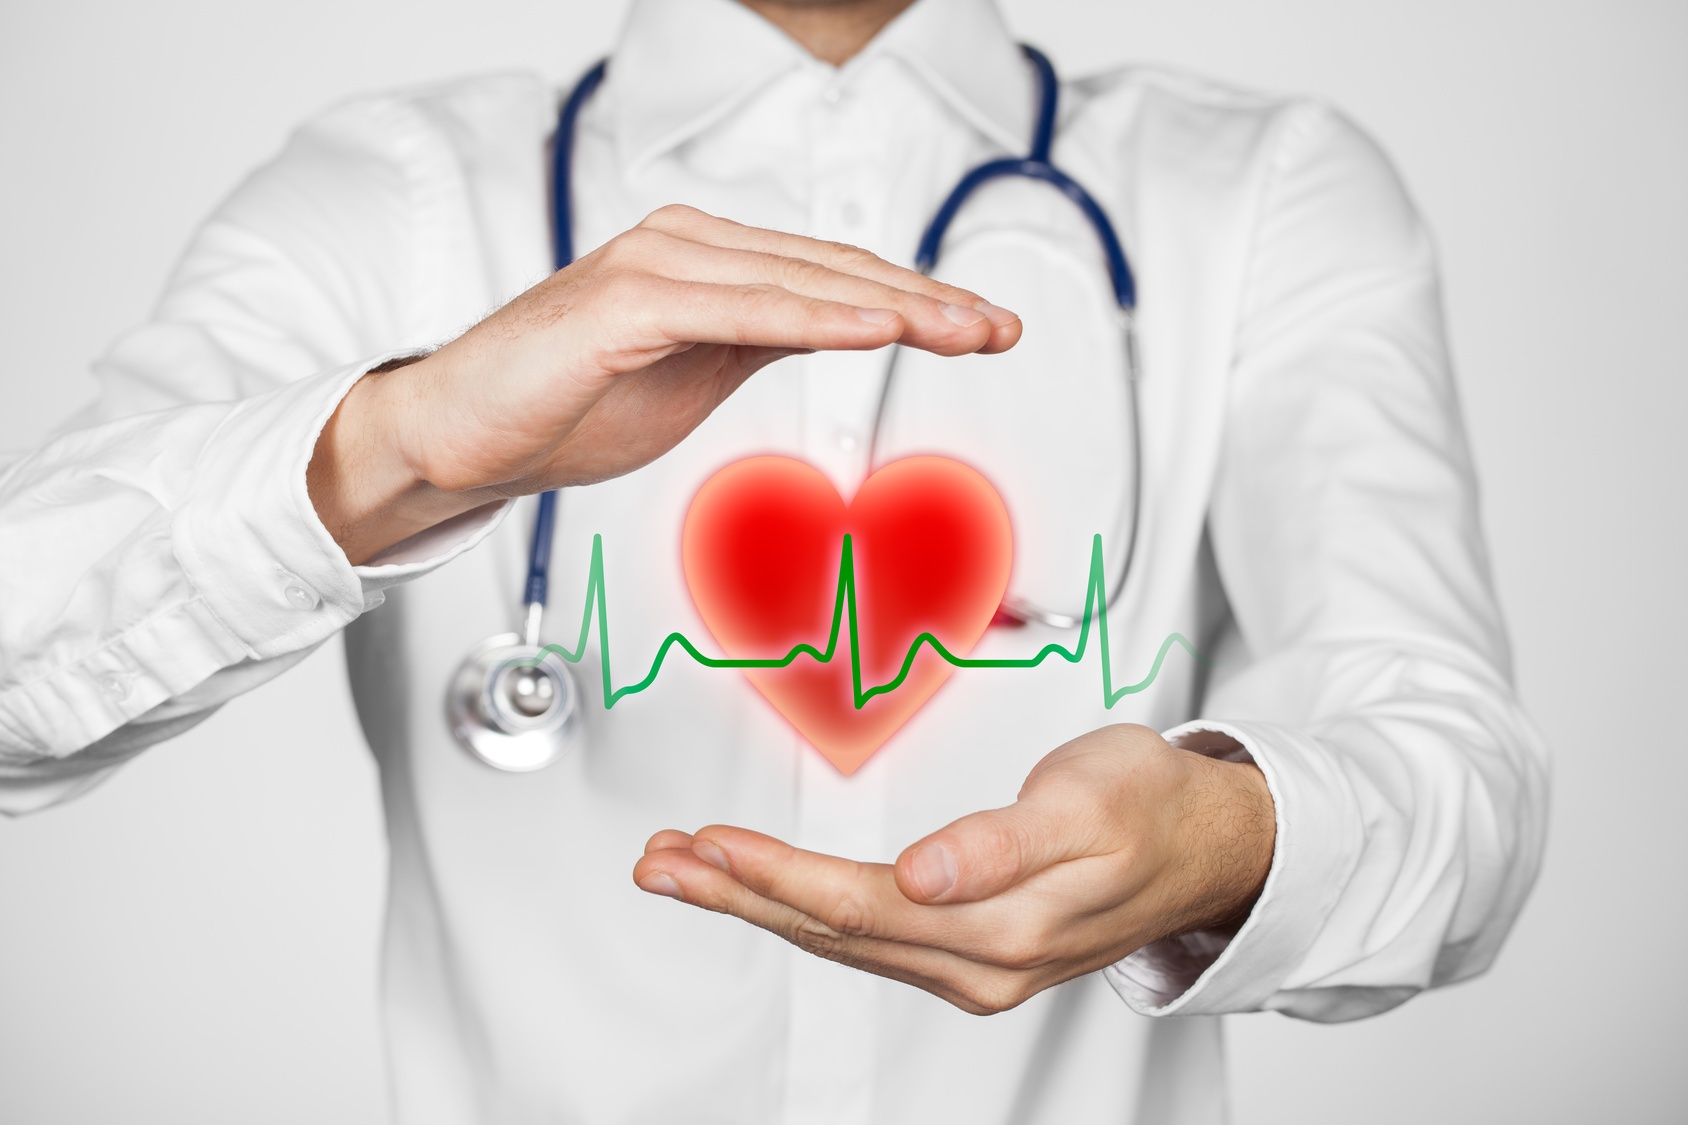 5 Things Hospitals Need to Know about Cardiovascular Disease Risks